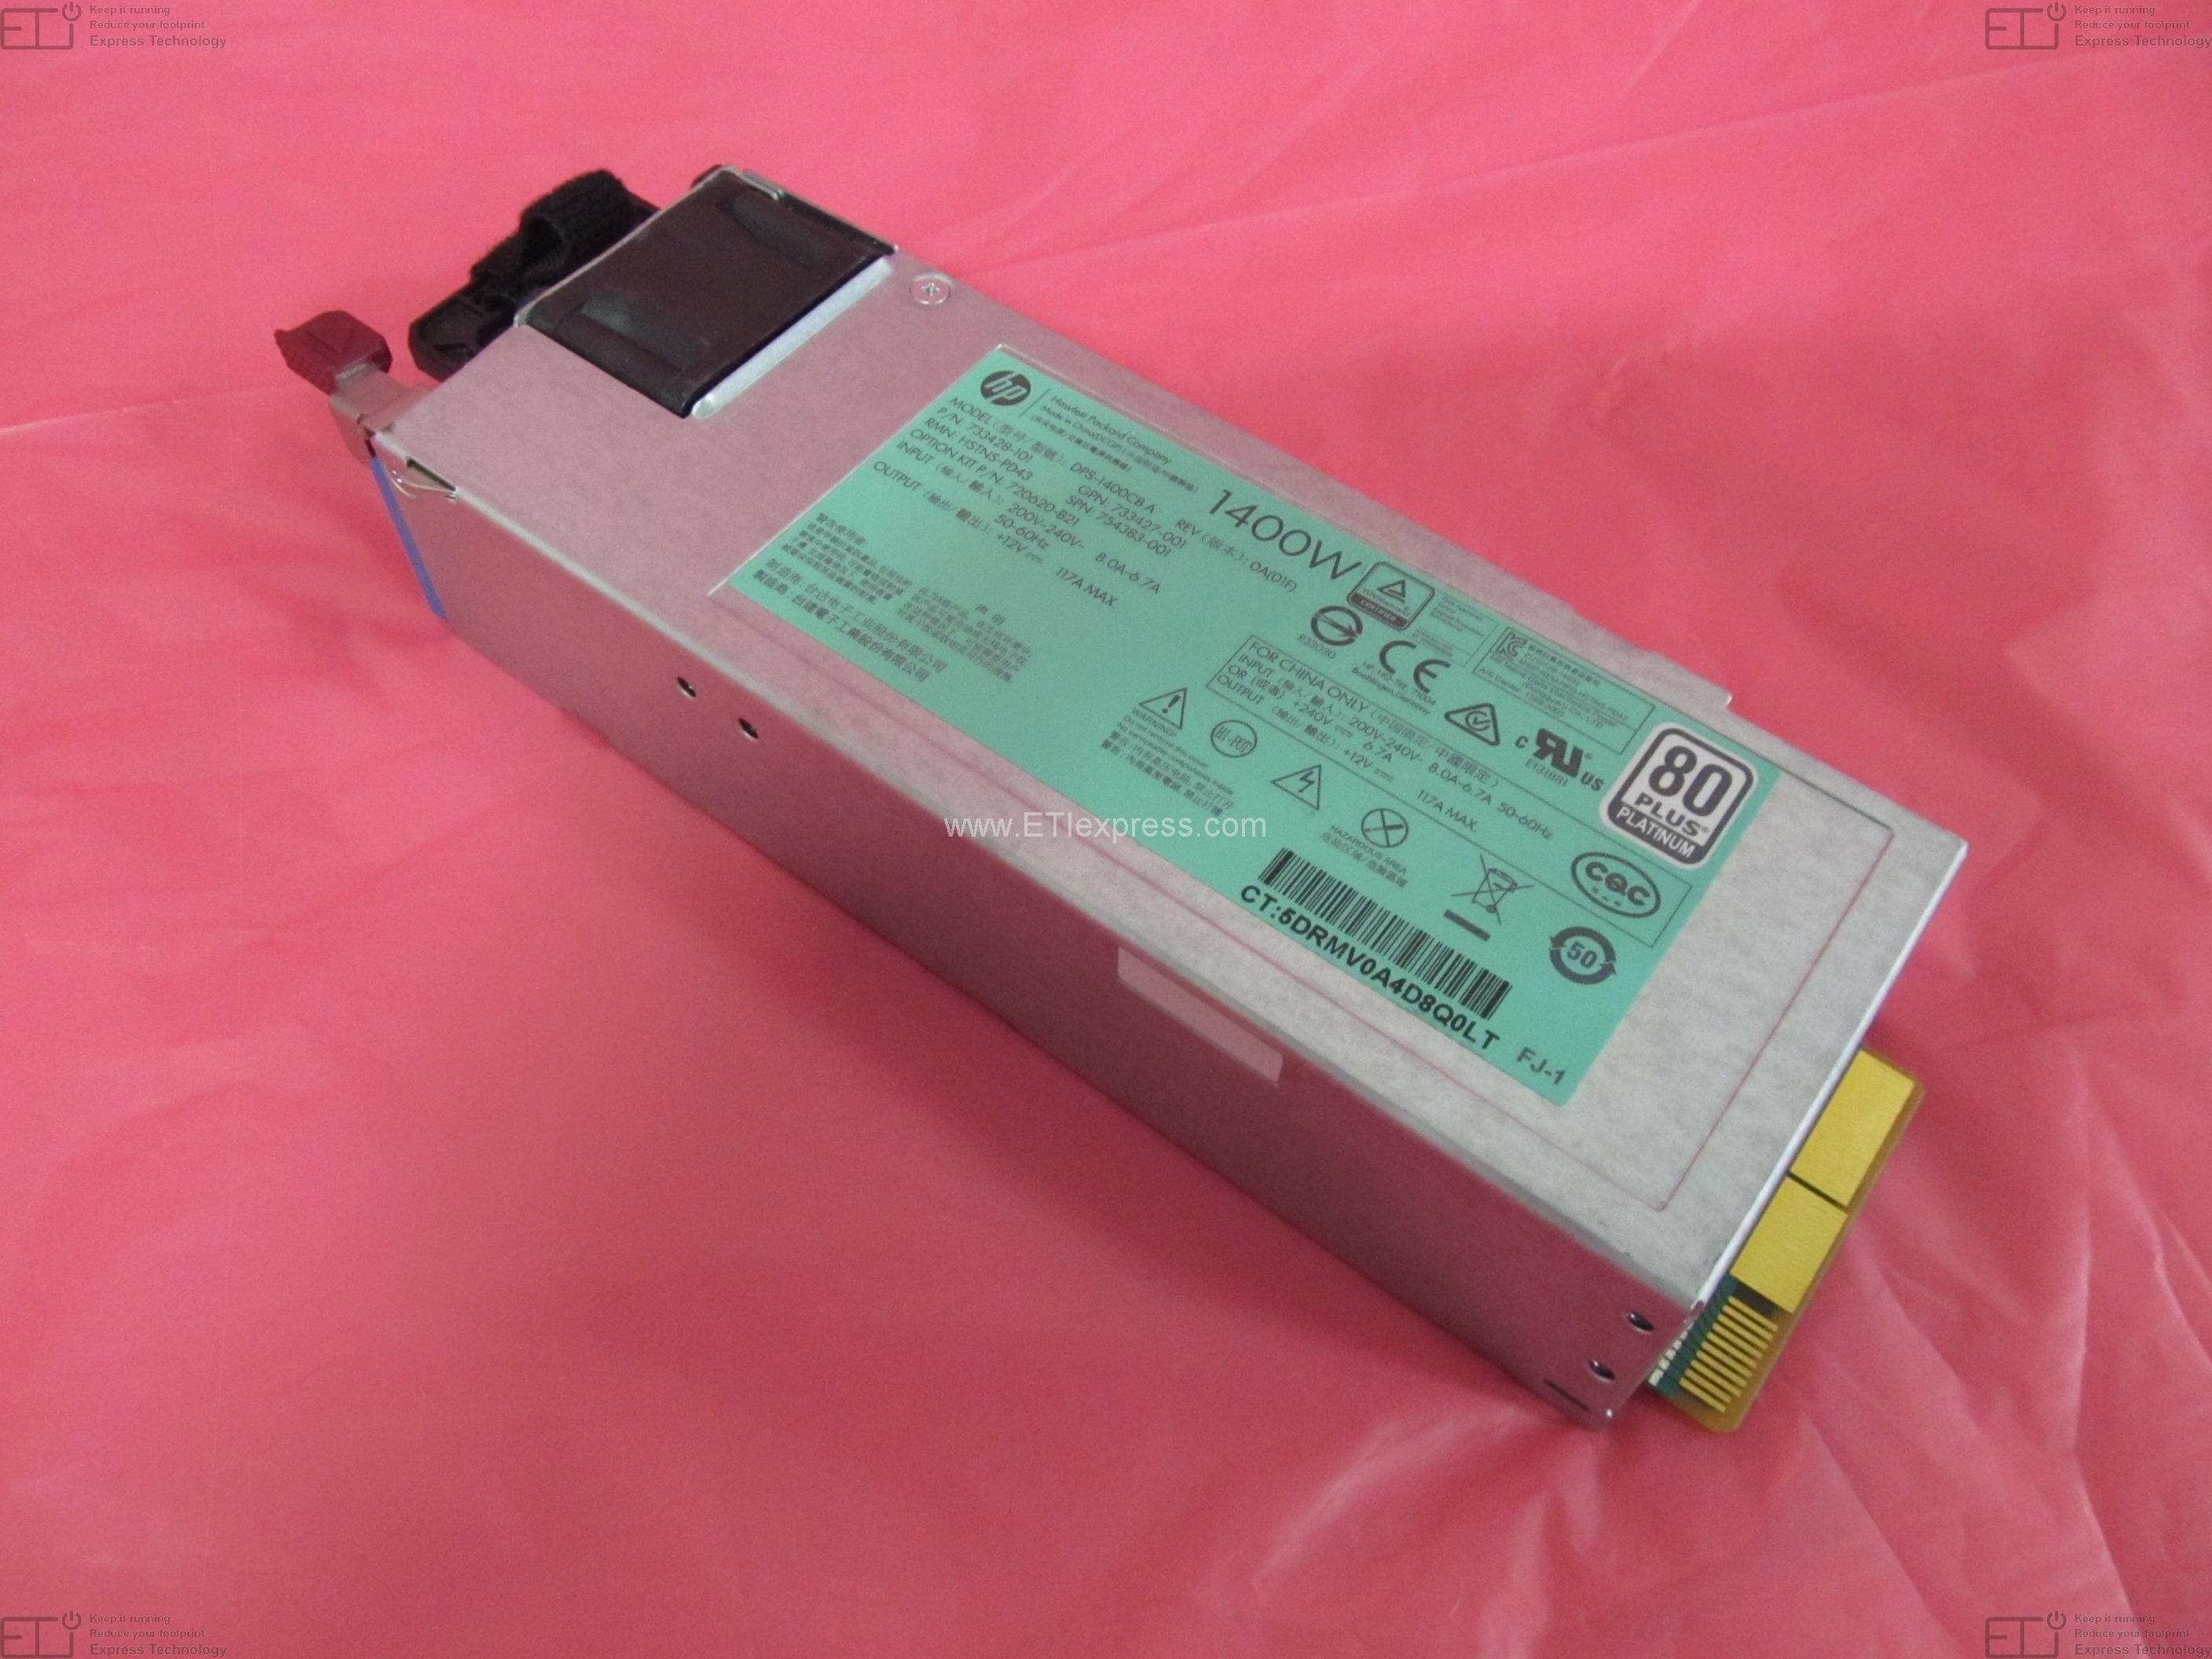 - 10GBase-SR up to 980 ft equivalent to: Sonicwall 01-SSC-9785 LC multi-mode Axiom 01-SSC-9785-AX SFP+ transceiver module 850 nm